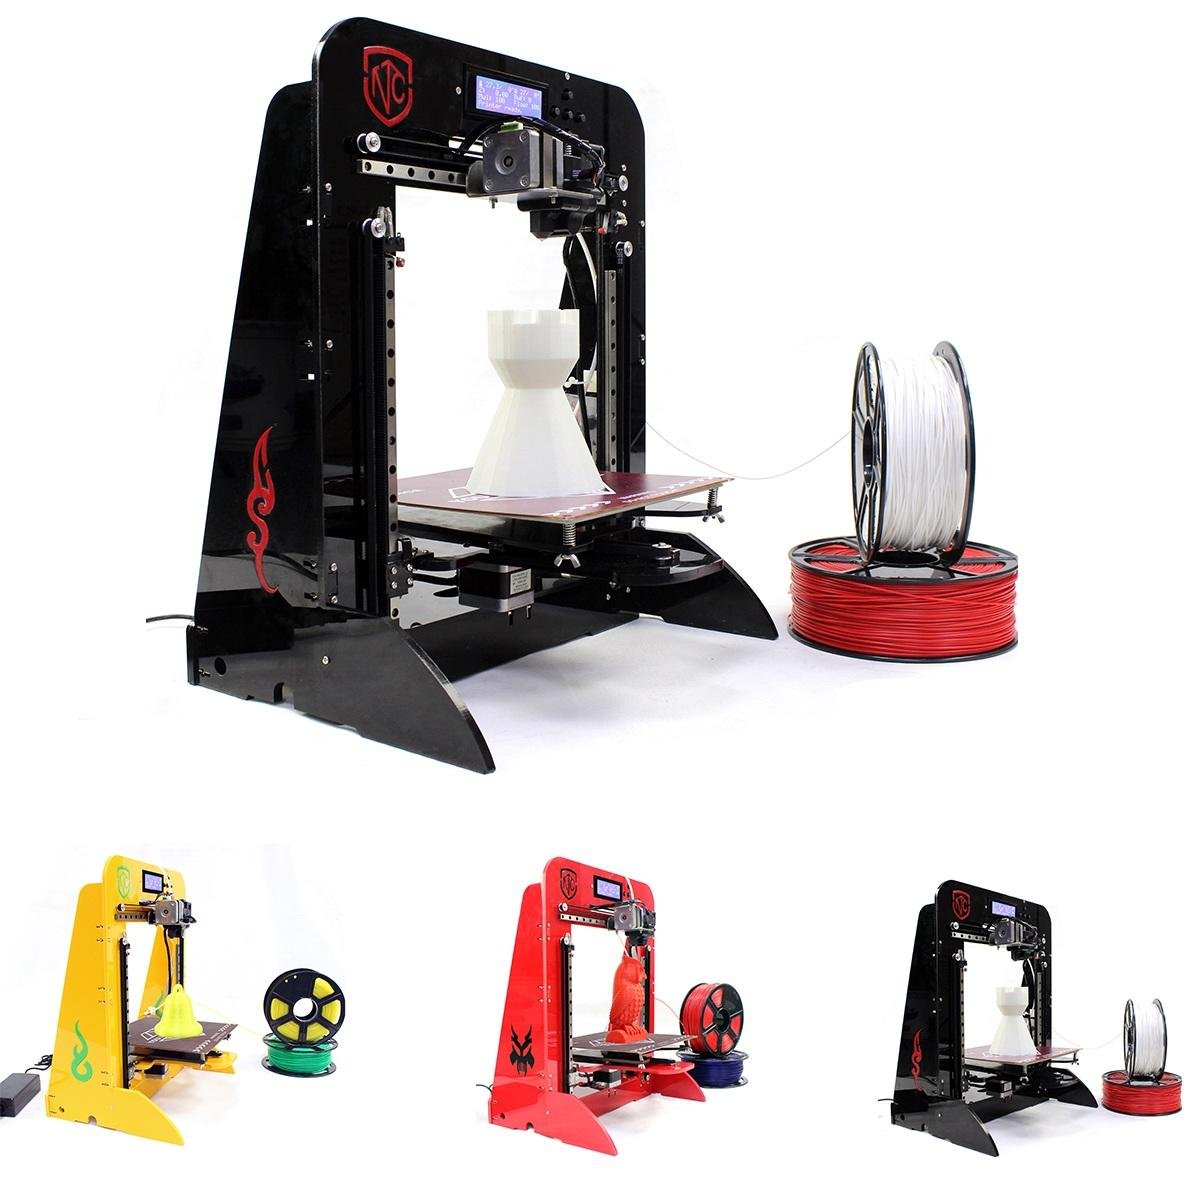 Tnice T 23 Single Extruder High Accuracy Diy 3d Printer Kit Come